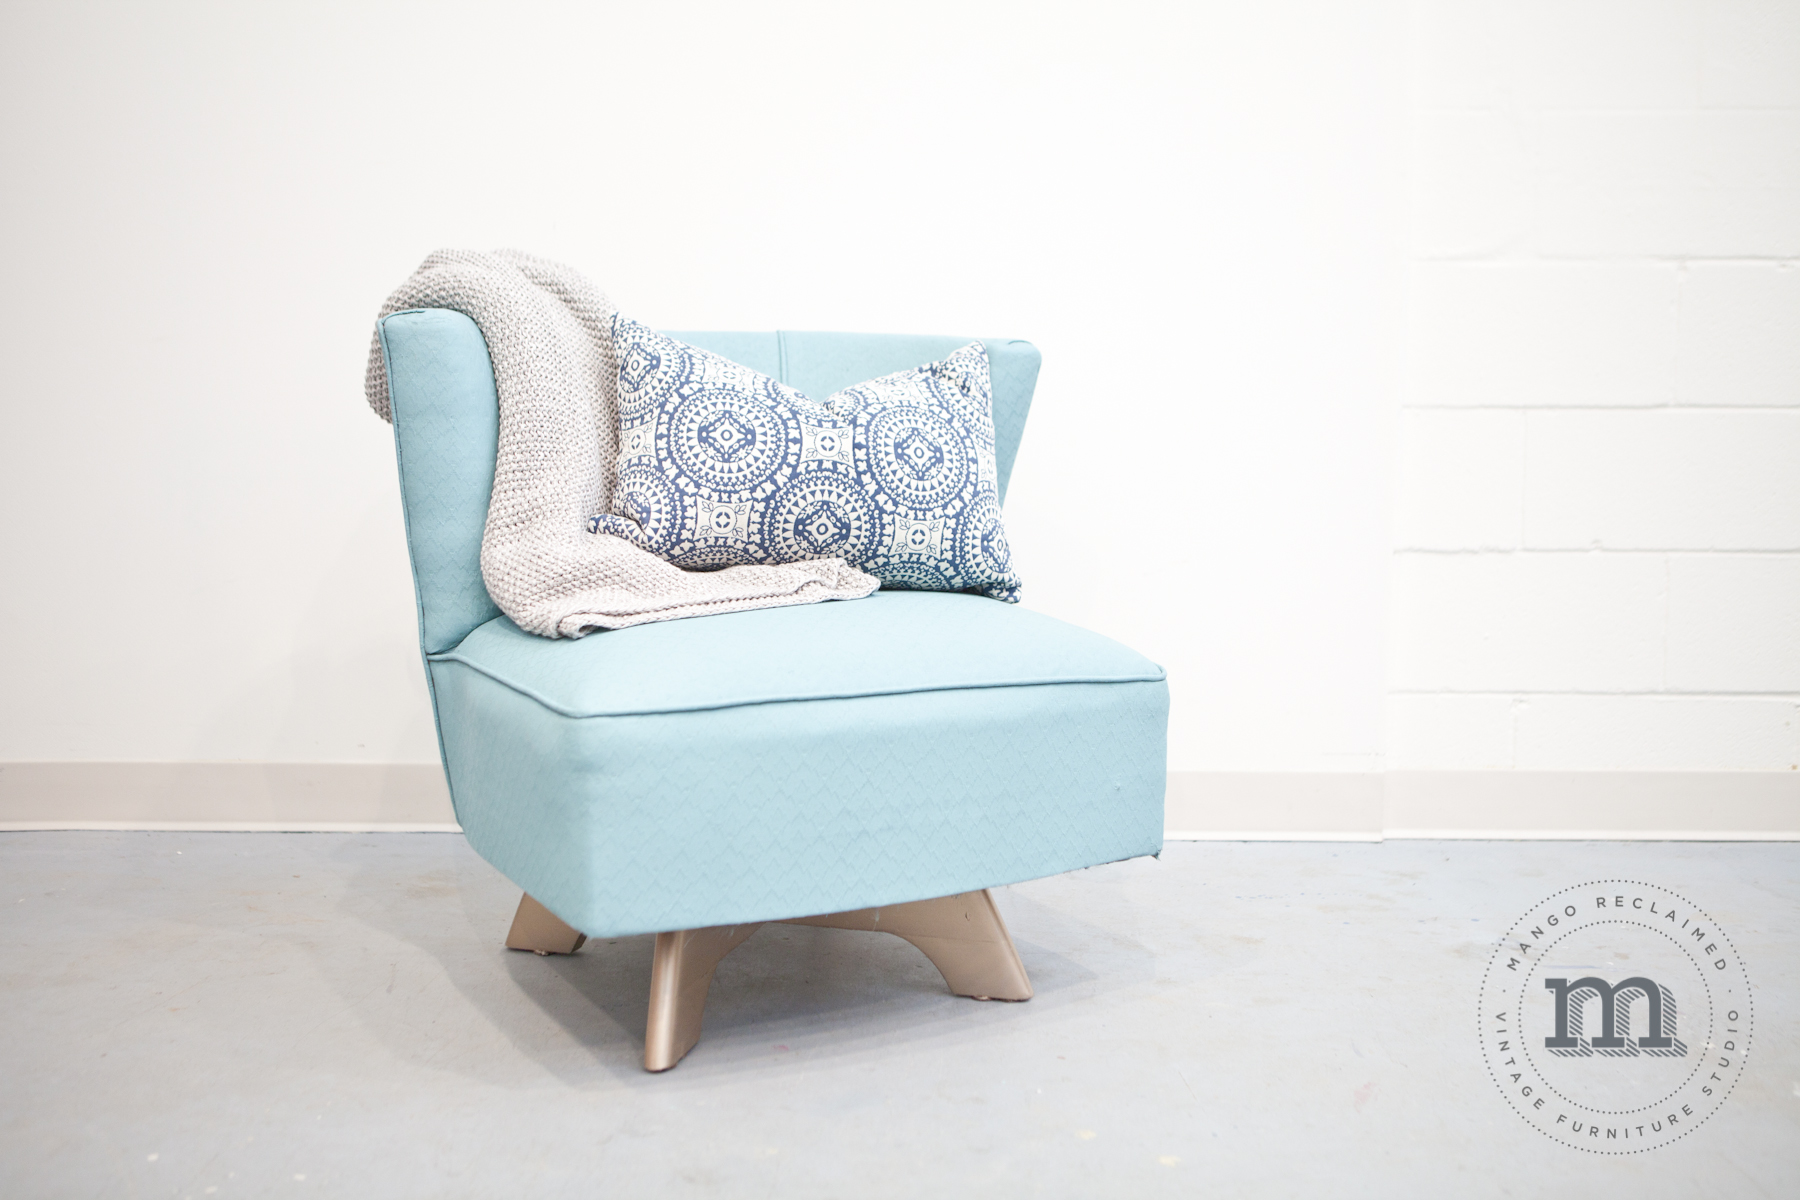 Use Van Gogh To Paint Your Upholstery Mango Reclaimed